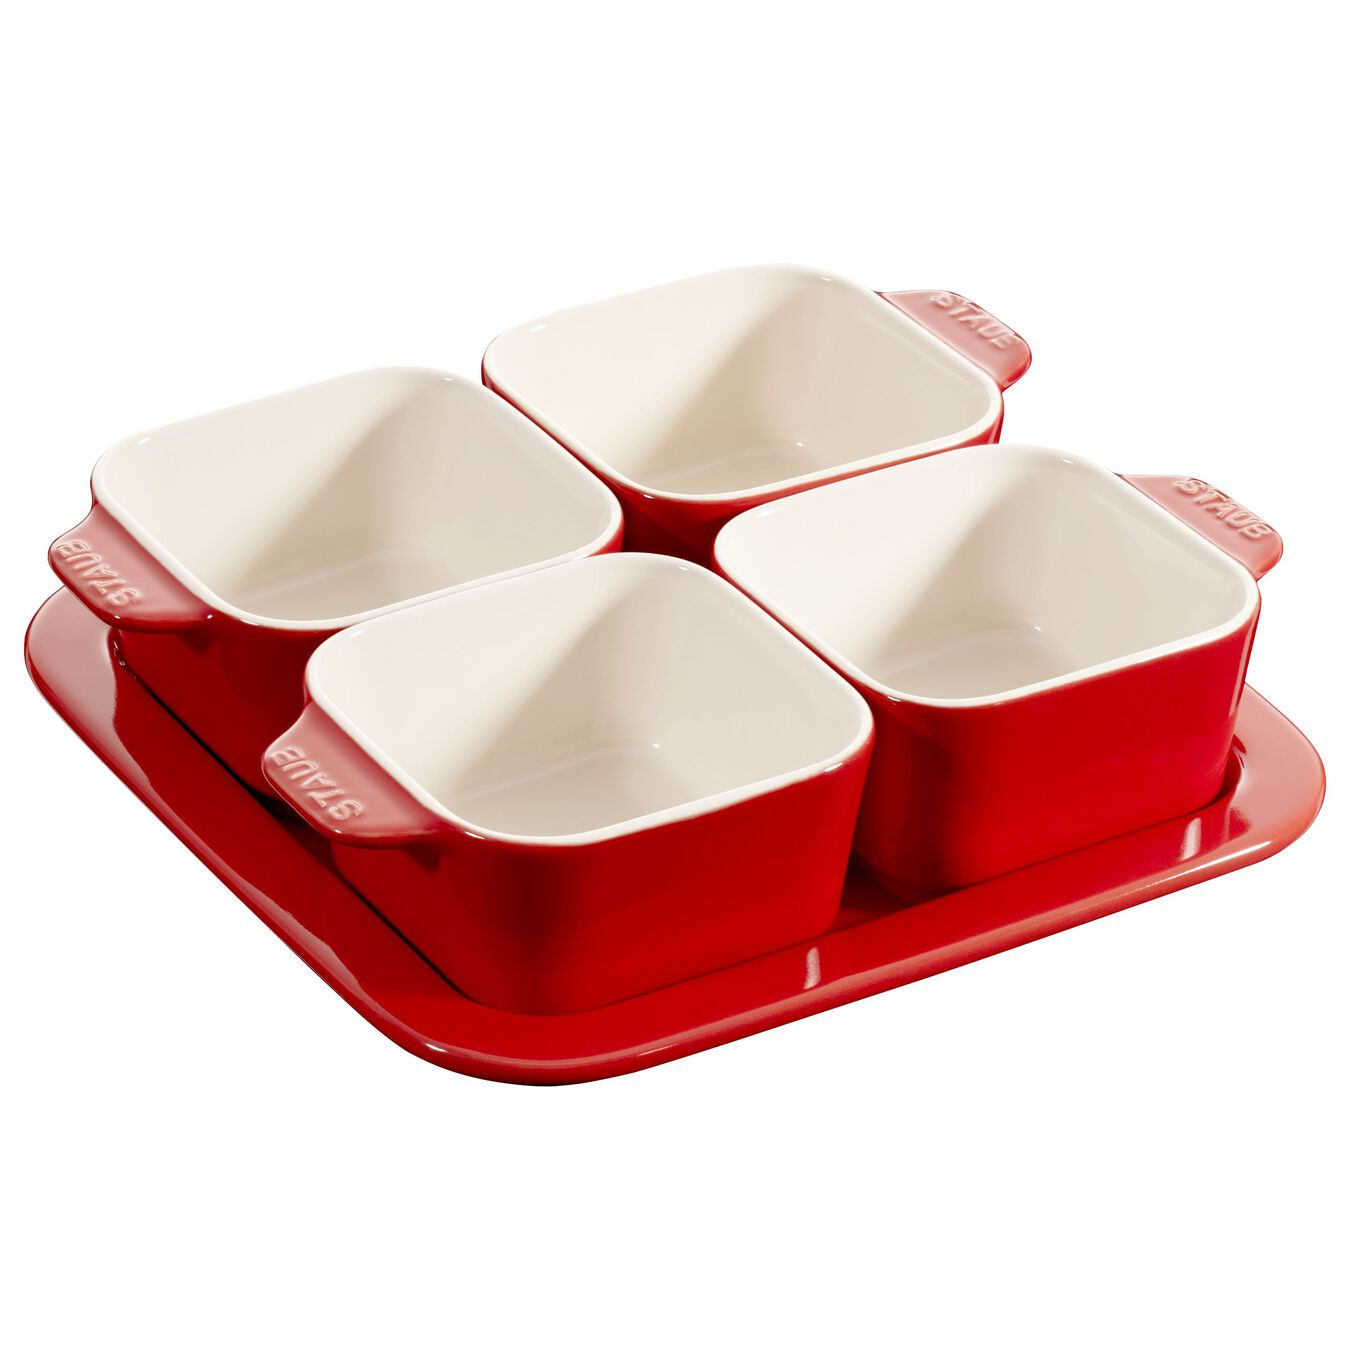 5 Piece 5 Piece Appetiser set, cherry - Visual Imperfections,,large 1